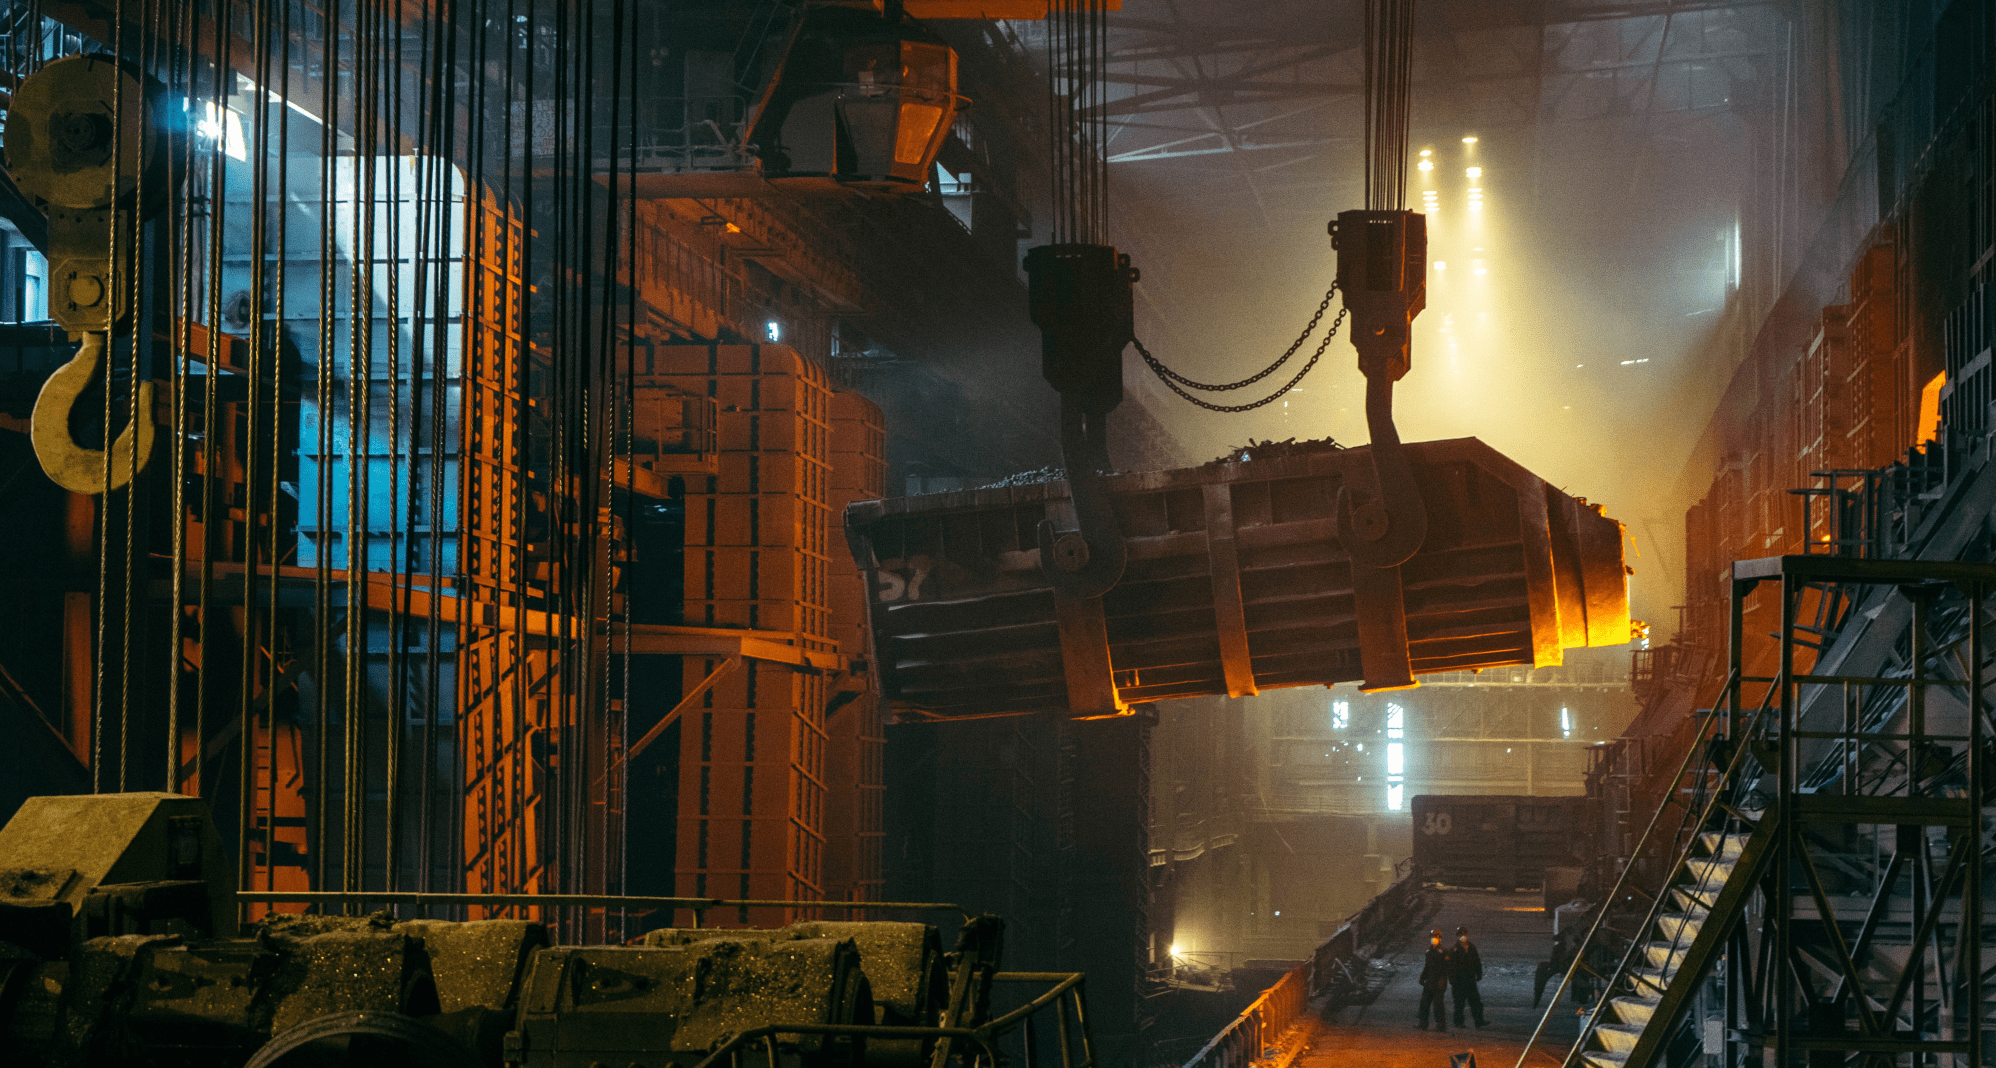 Heavy Machinery Manufacturing in the Age of Industry 4.0